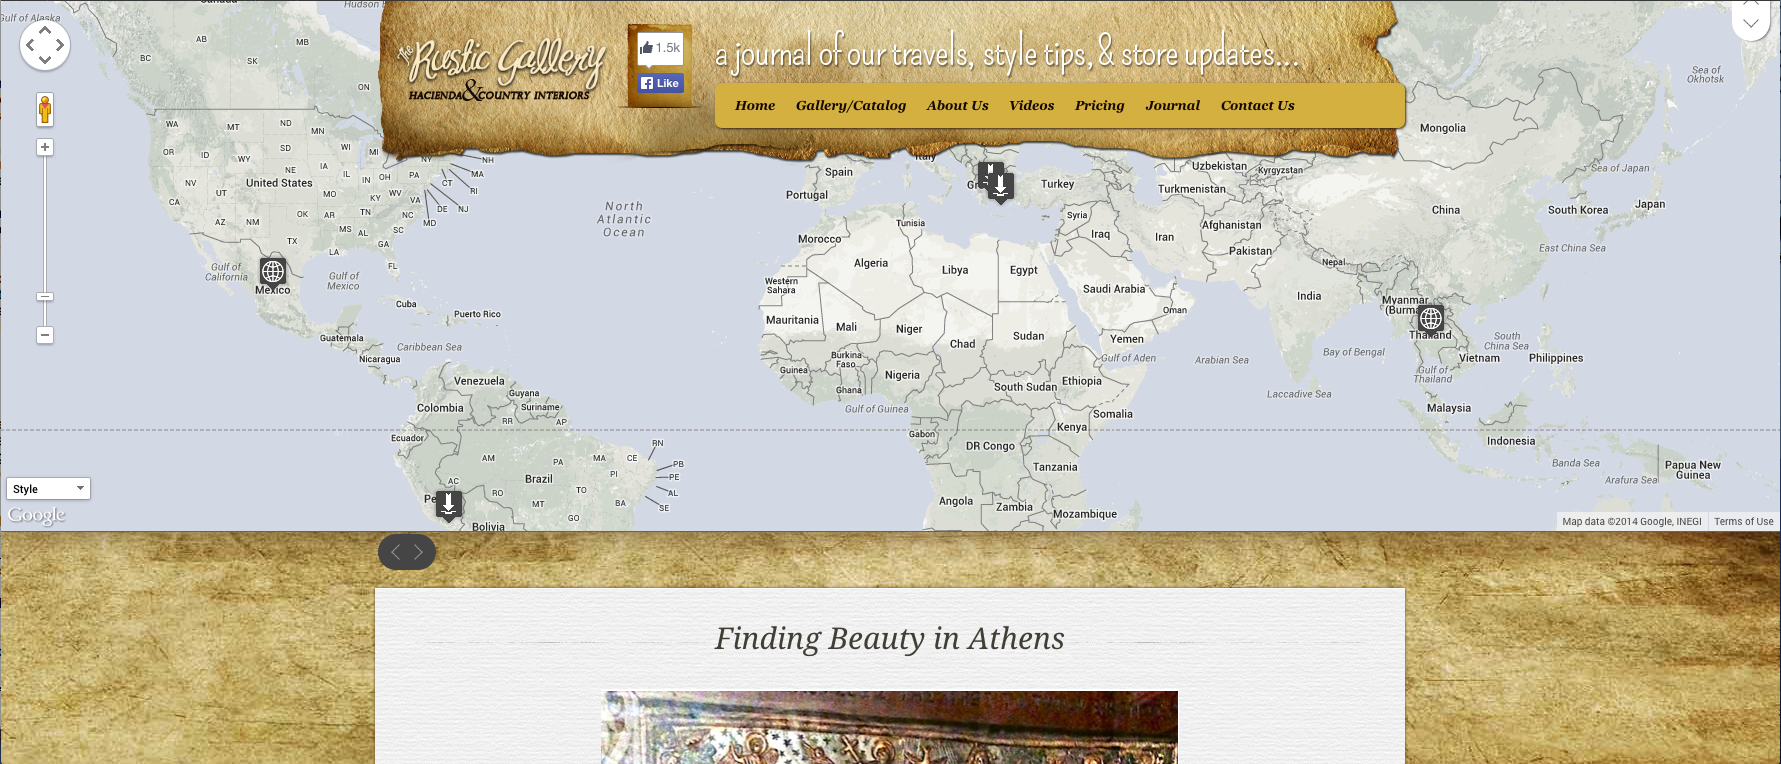 San Antonio Website Design The Rustic Gallery Blog Journal